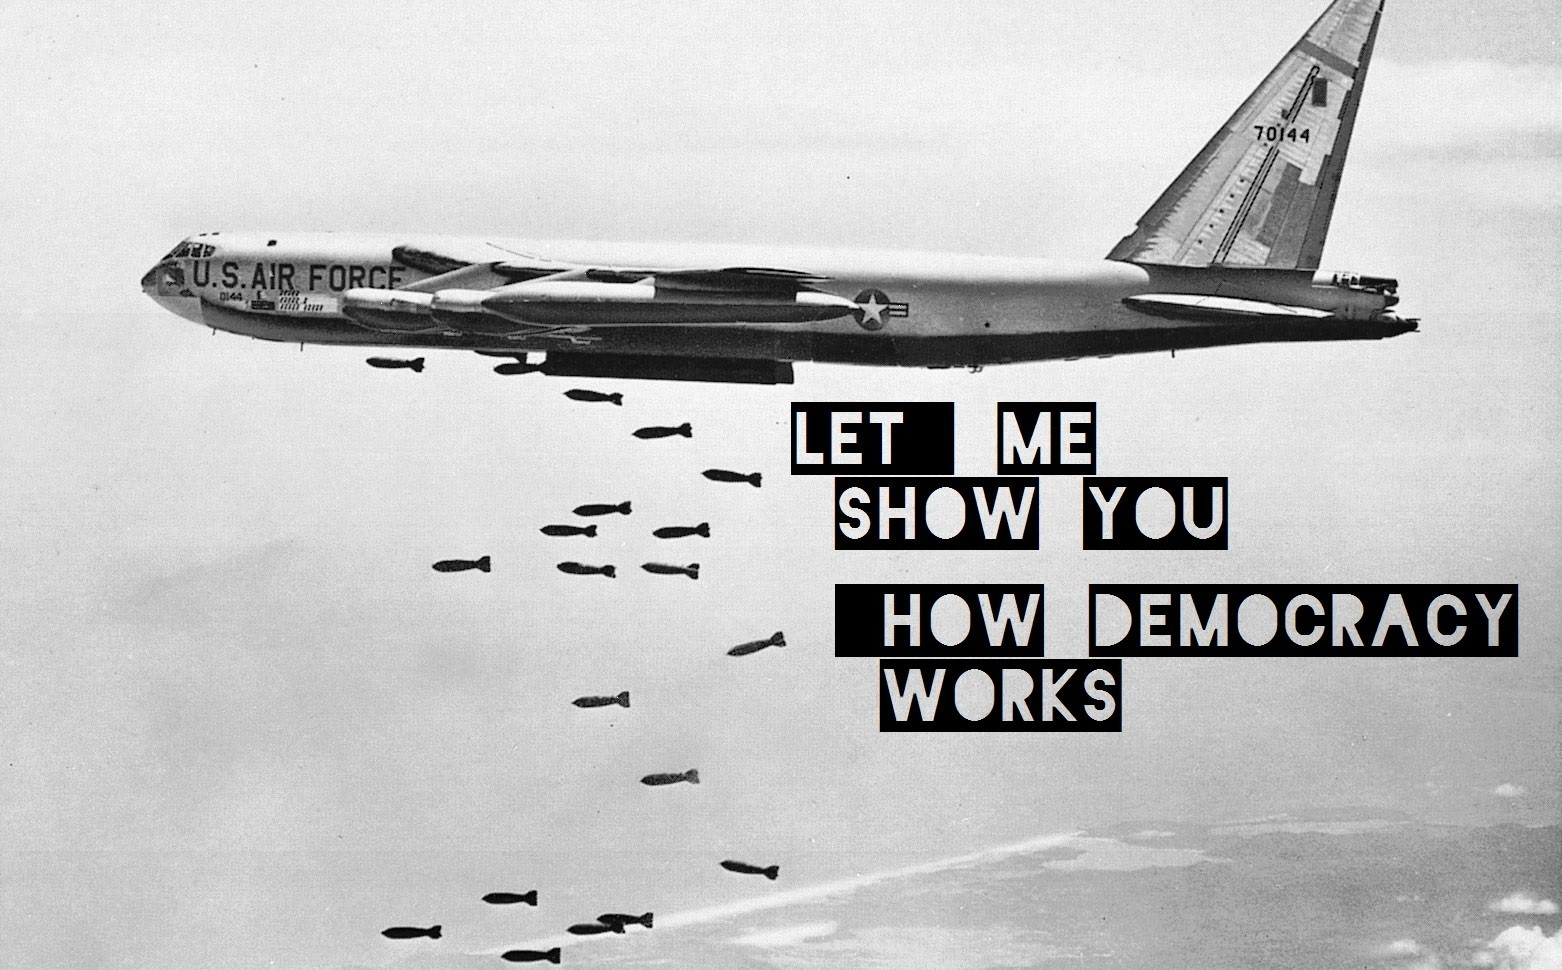 General 1562x970 quote monochrome Boeing B-52 Stratofortress USA air force US Air Force politics Democracy gray